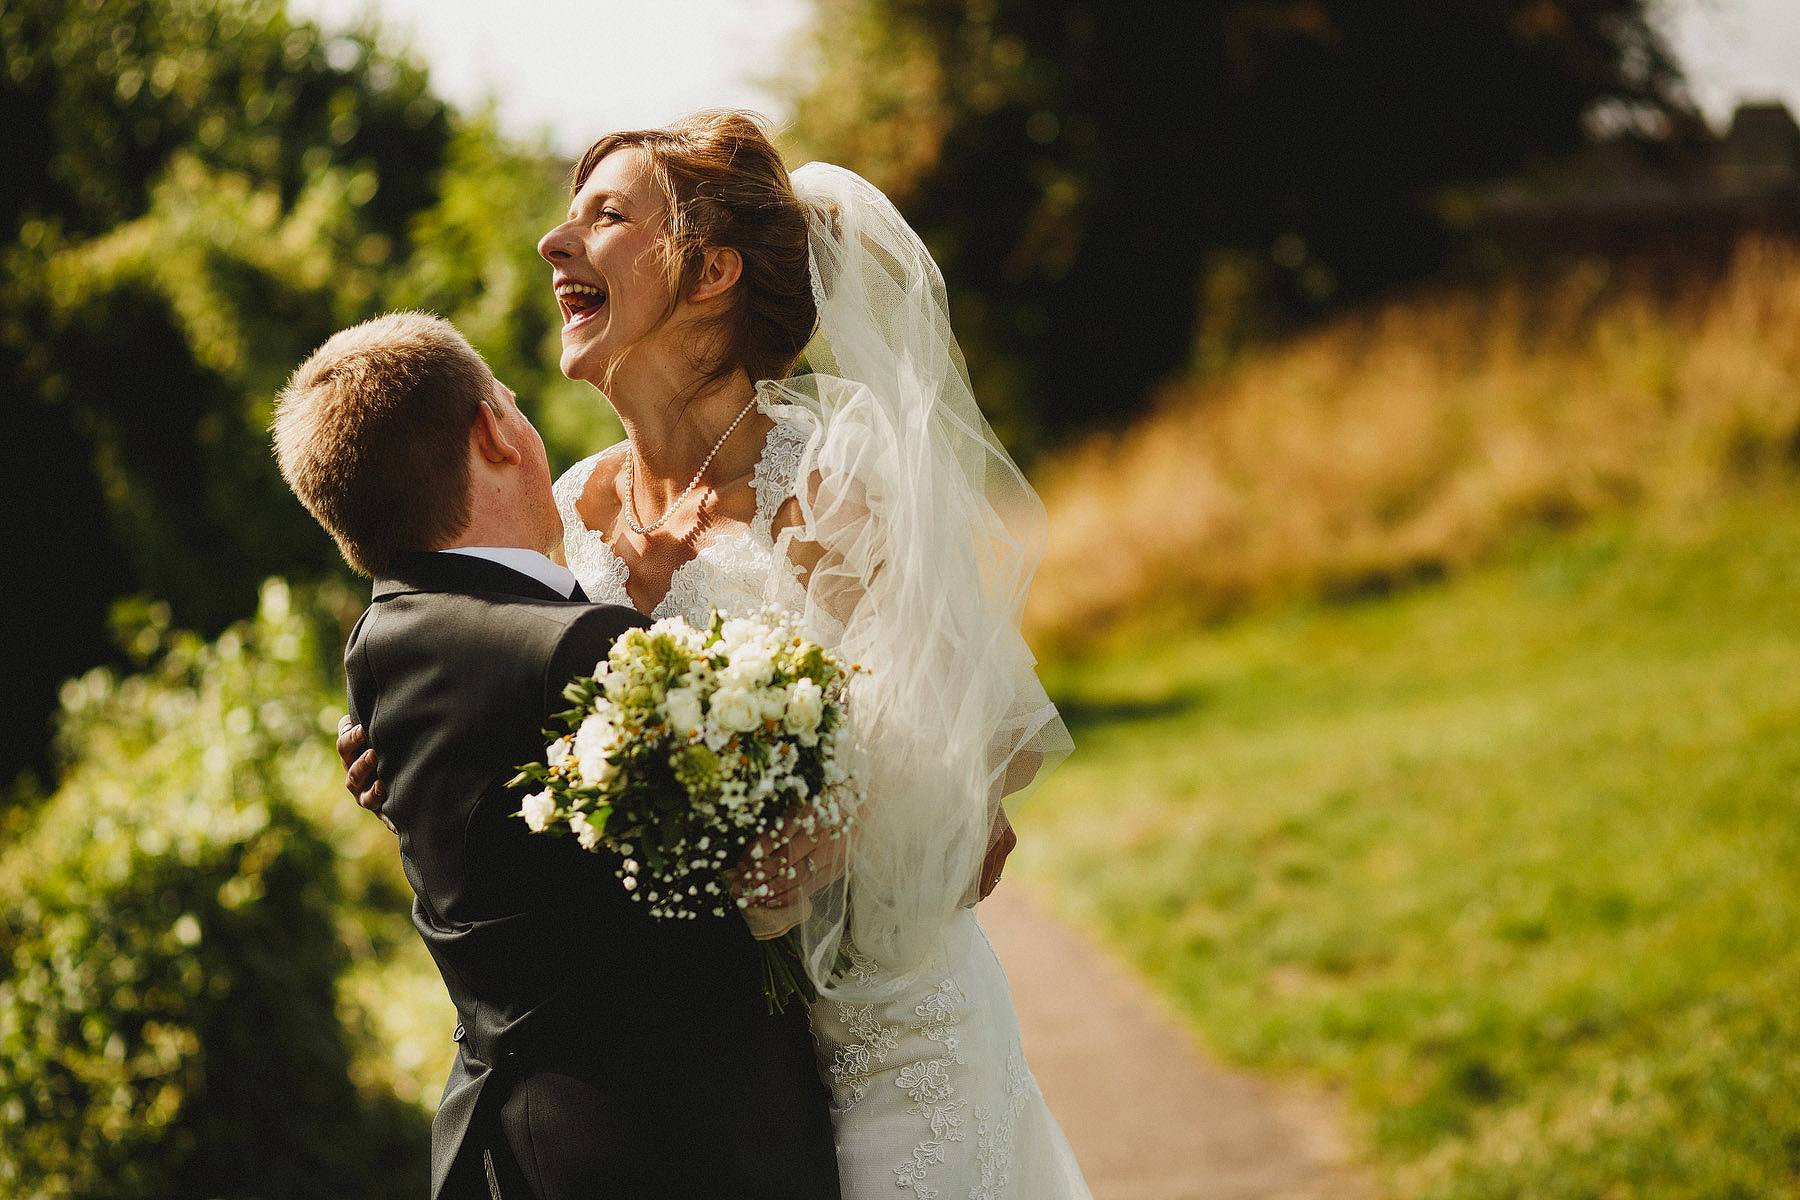 groom picking up bride and laughing